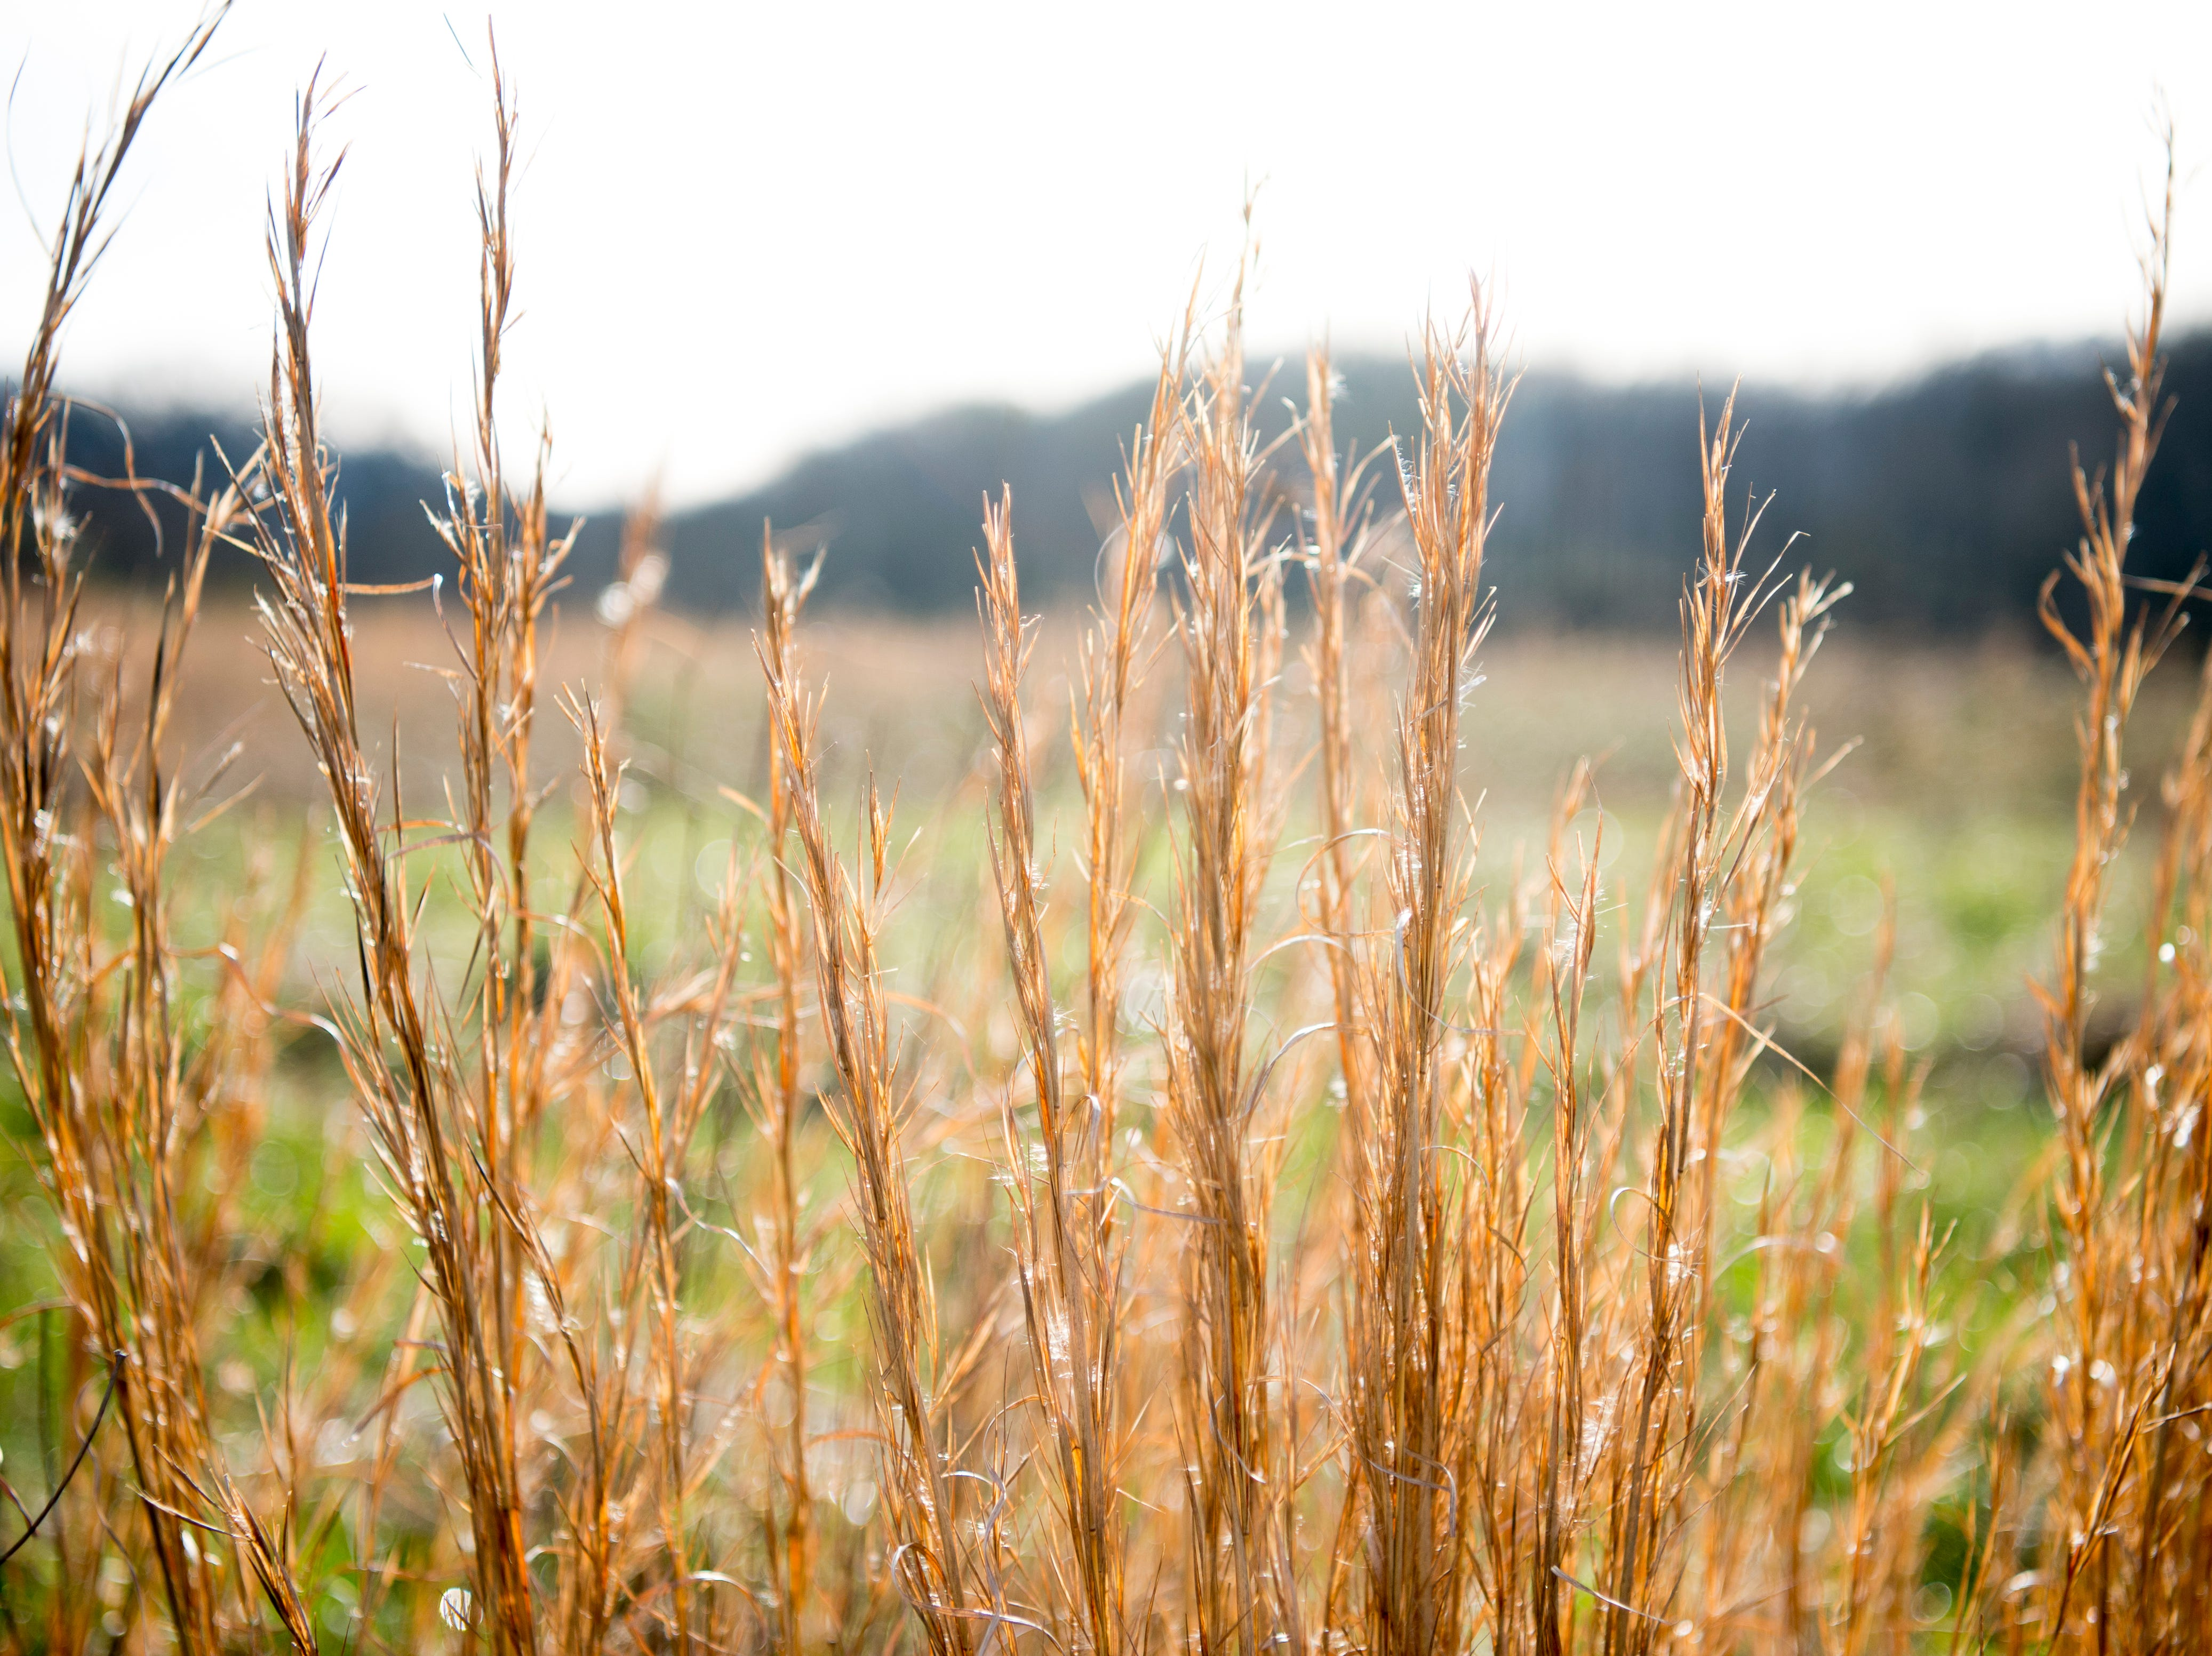 Plants sway in the wind at the site of the future Aspire Park in Clinton, Tennessee on Tuesday, March 12, 2019. The Hollingsworth Foundation is looking to redevelop nearly 450 acres of land off Yarnell Road into a recreational park.